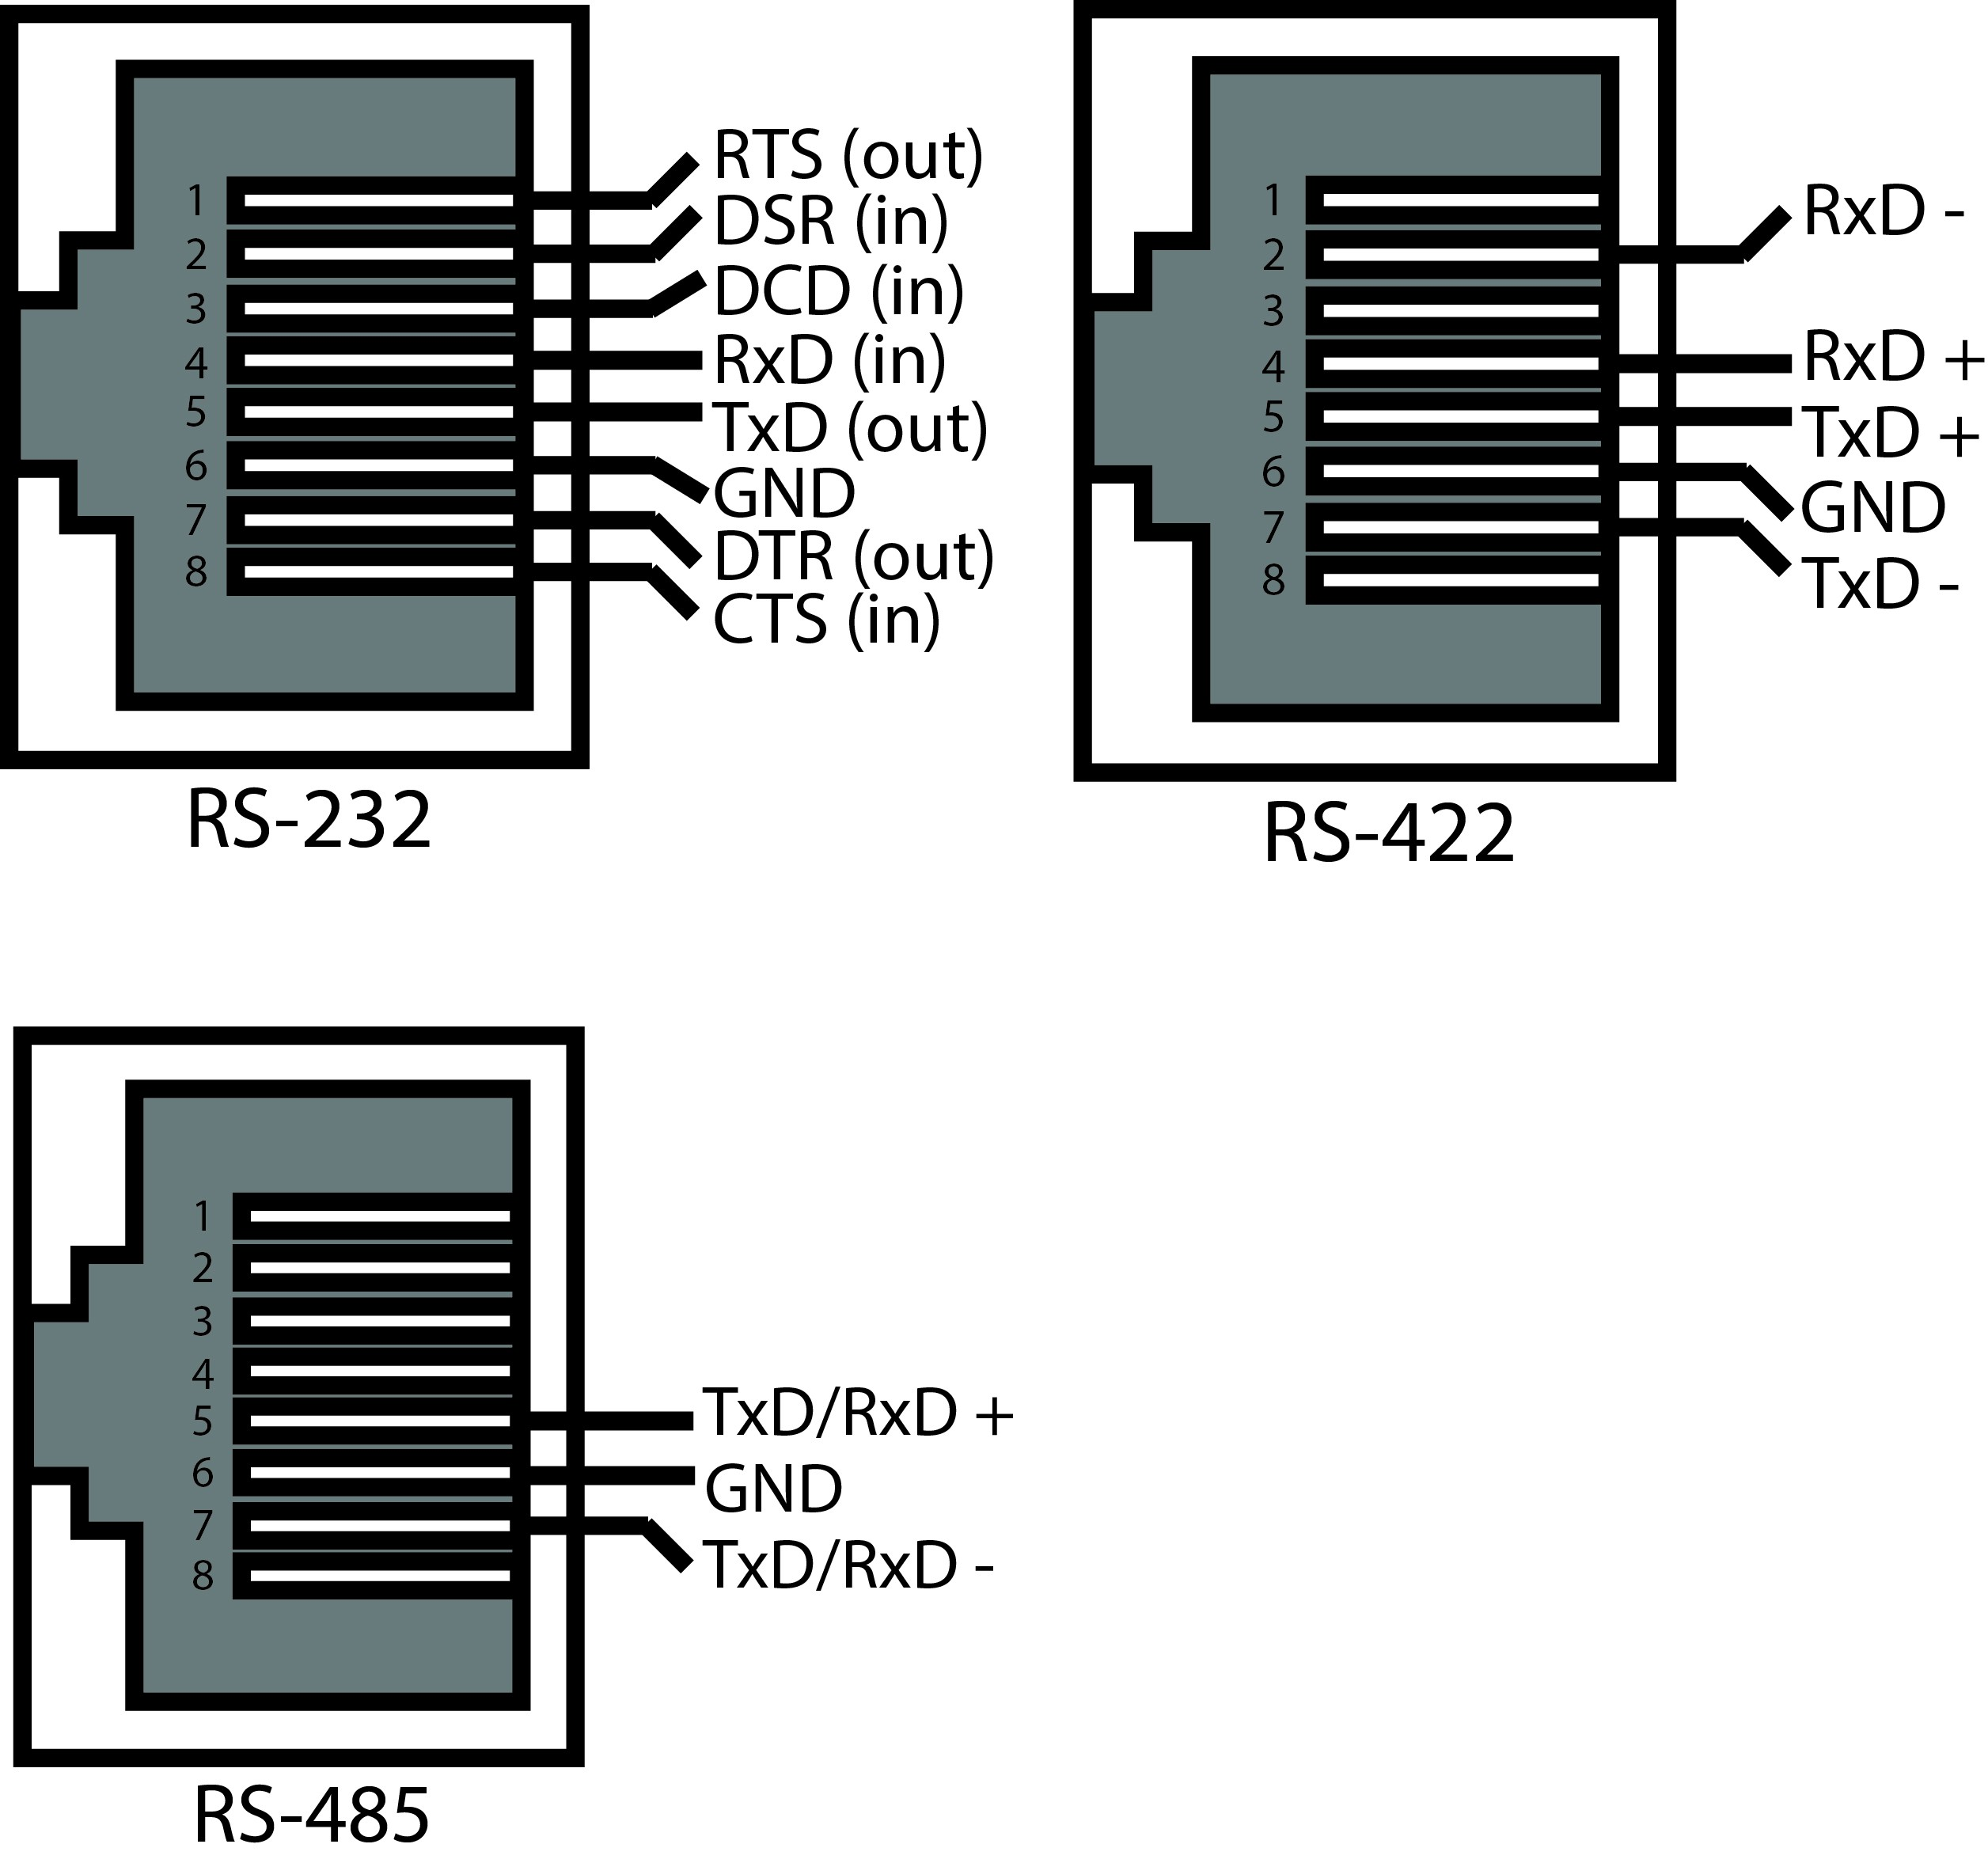 rs485 4 wire connection diagram